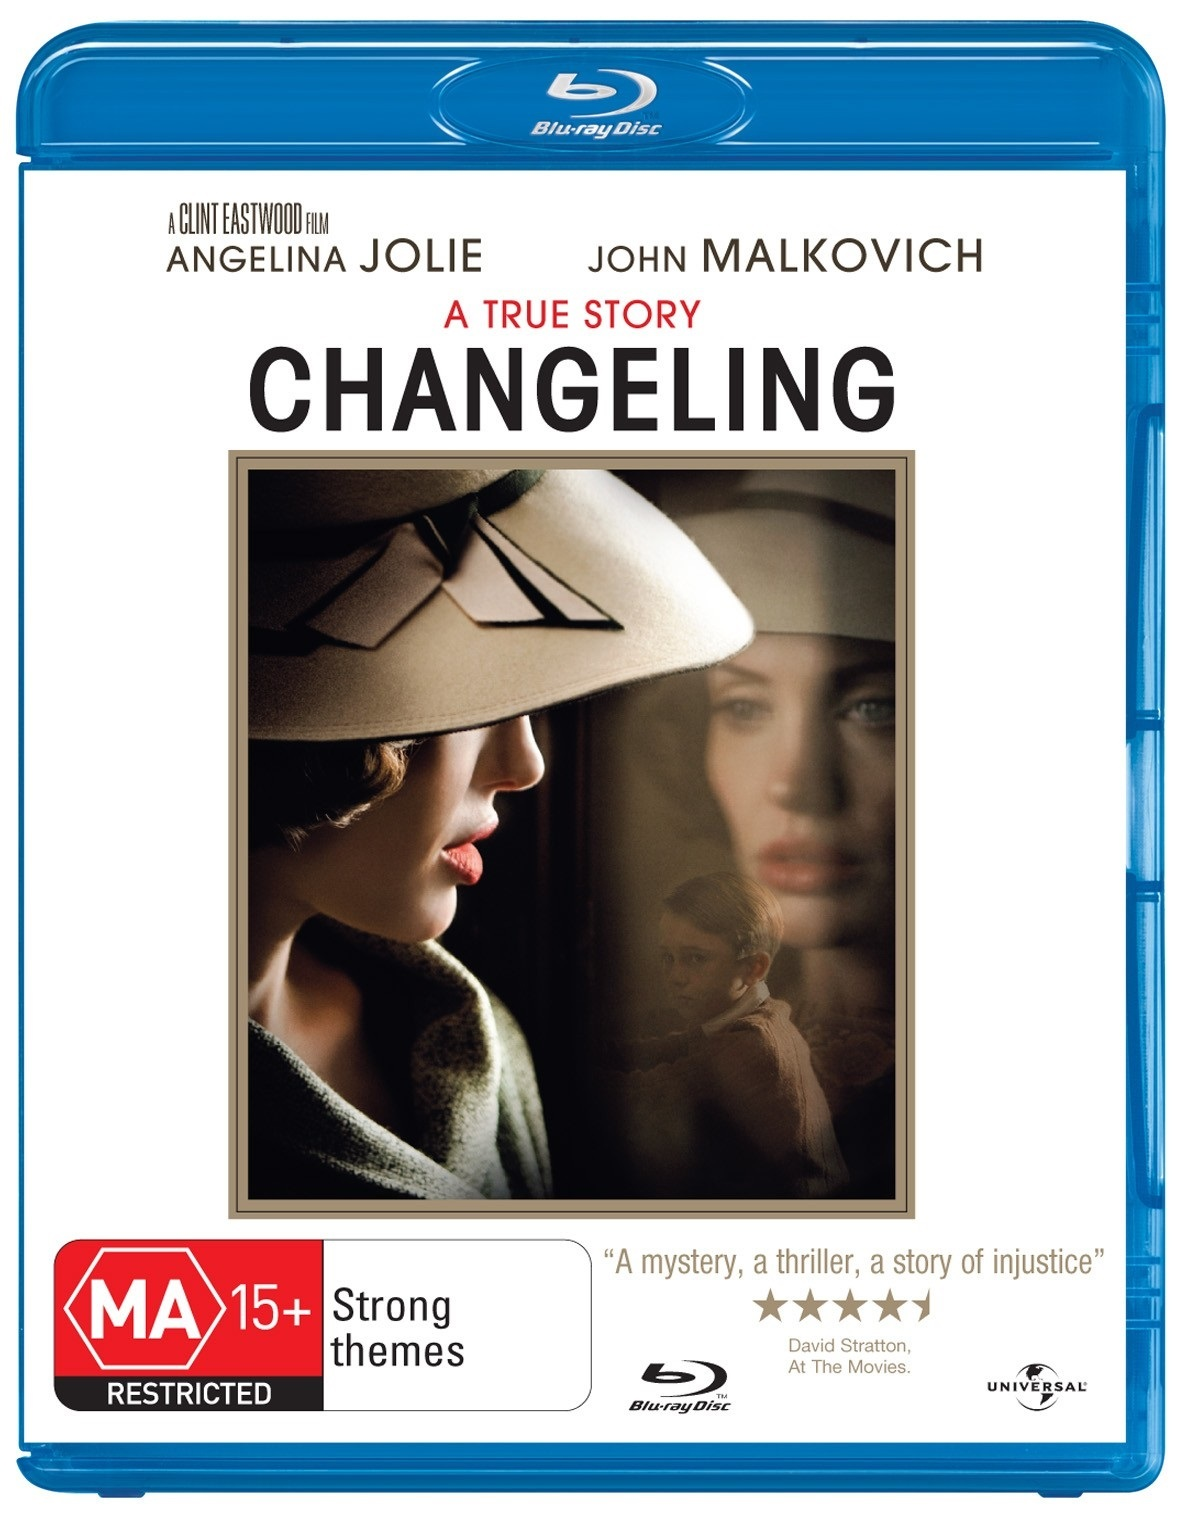 Changeling on Blu-ray image